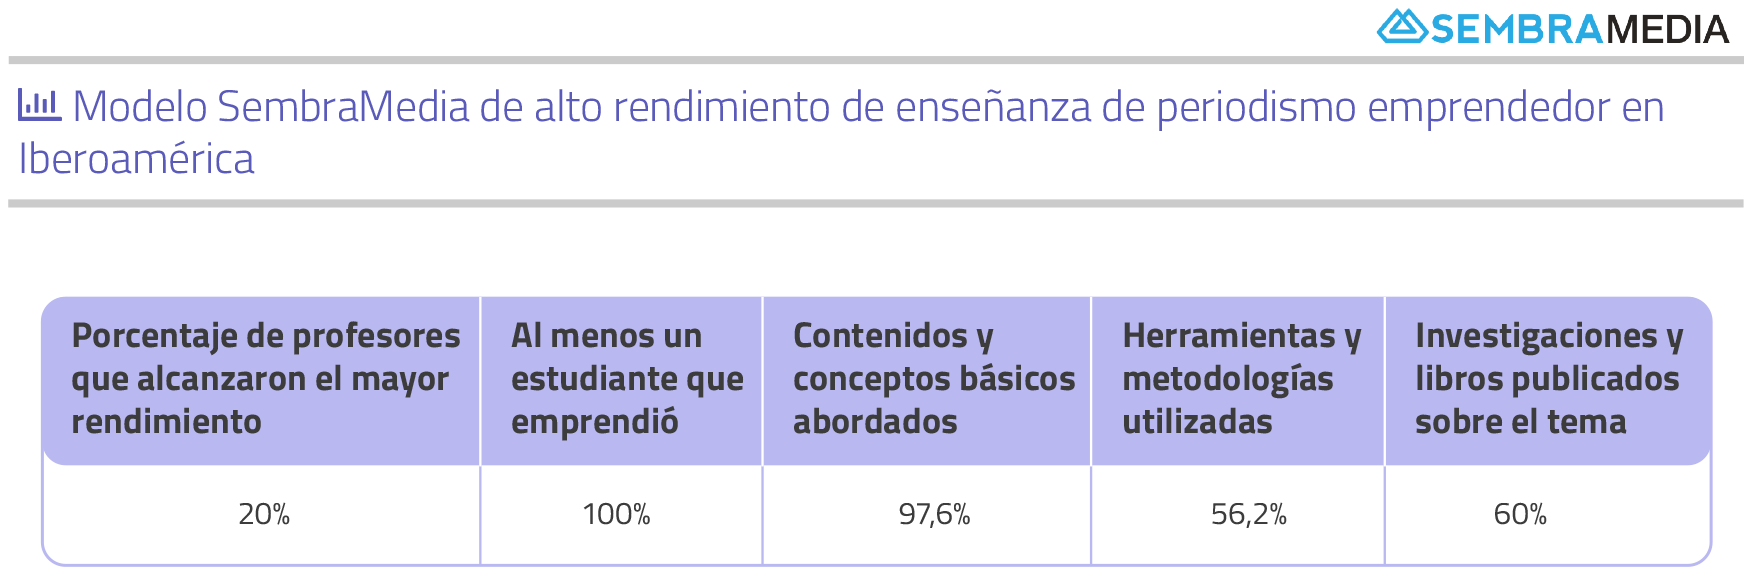 //profesores.sembramedia.org/wp-content/uploads/2018/12/graficos-3.png